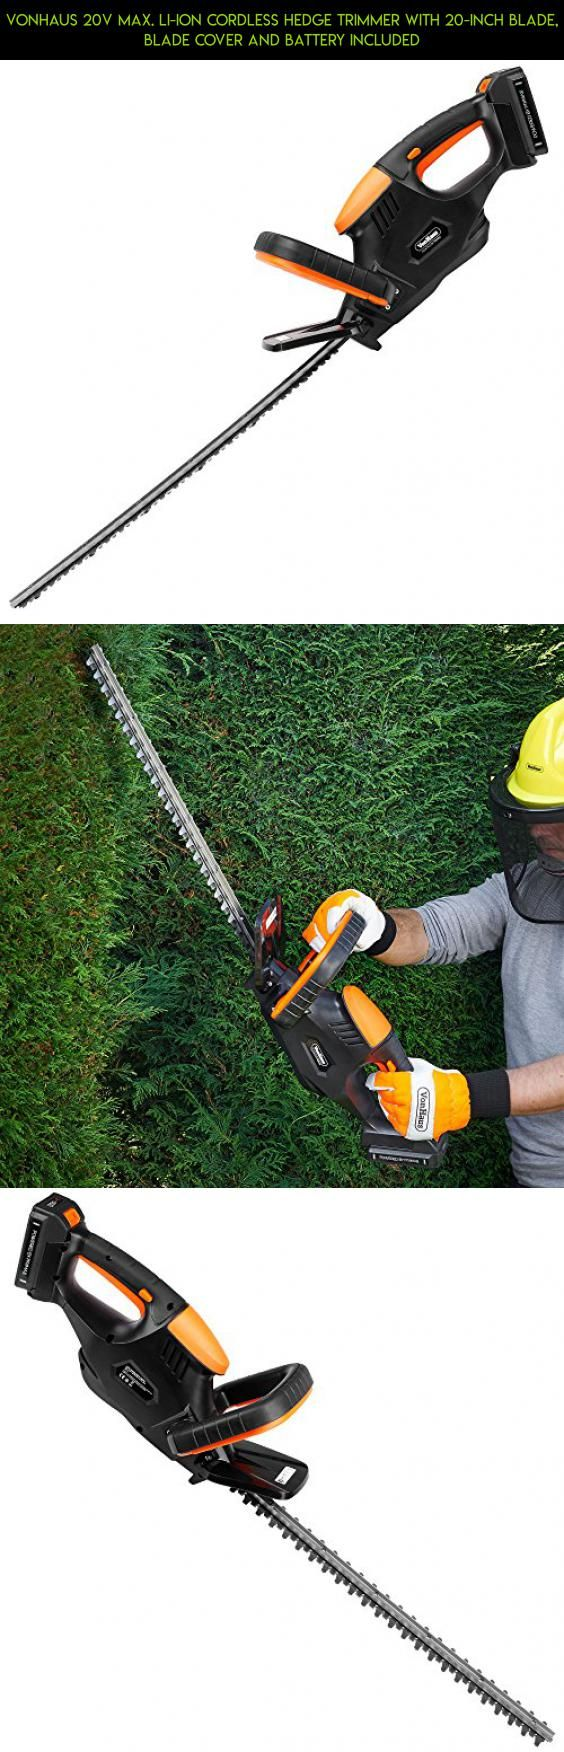 VonHaus 20V Max. Li-Ion Cordless Hedge Trimmer with 20-inch Blade, Blade Cover and Battery Included #camera #parts #racing #products #kit #fpv #trimmers #for #technology #drone #plans #shopping #men #gadgets #tech